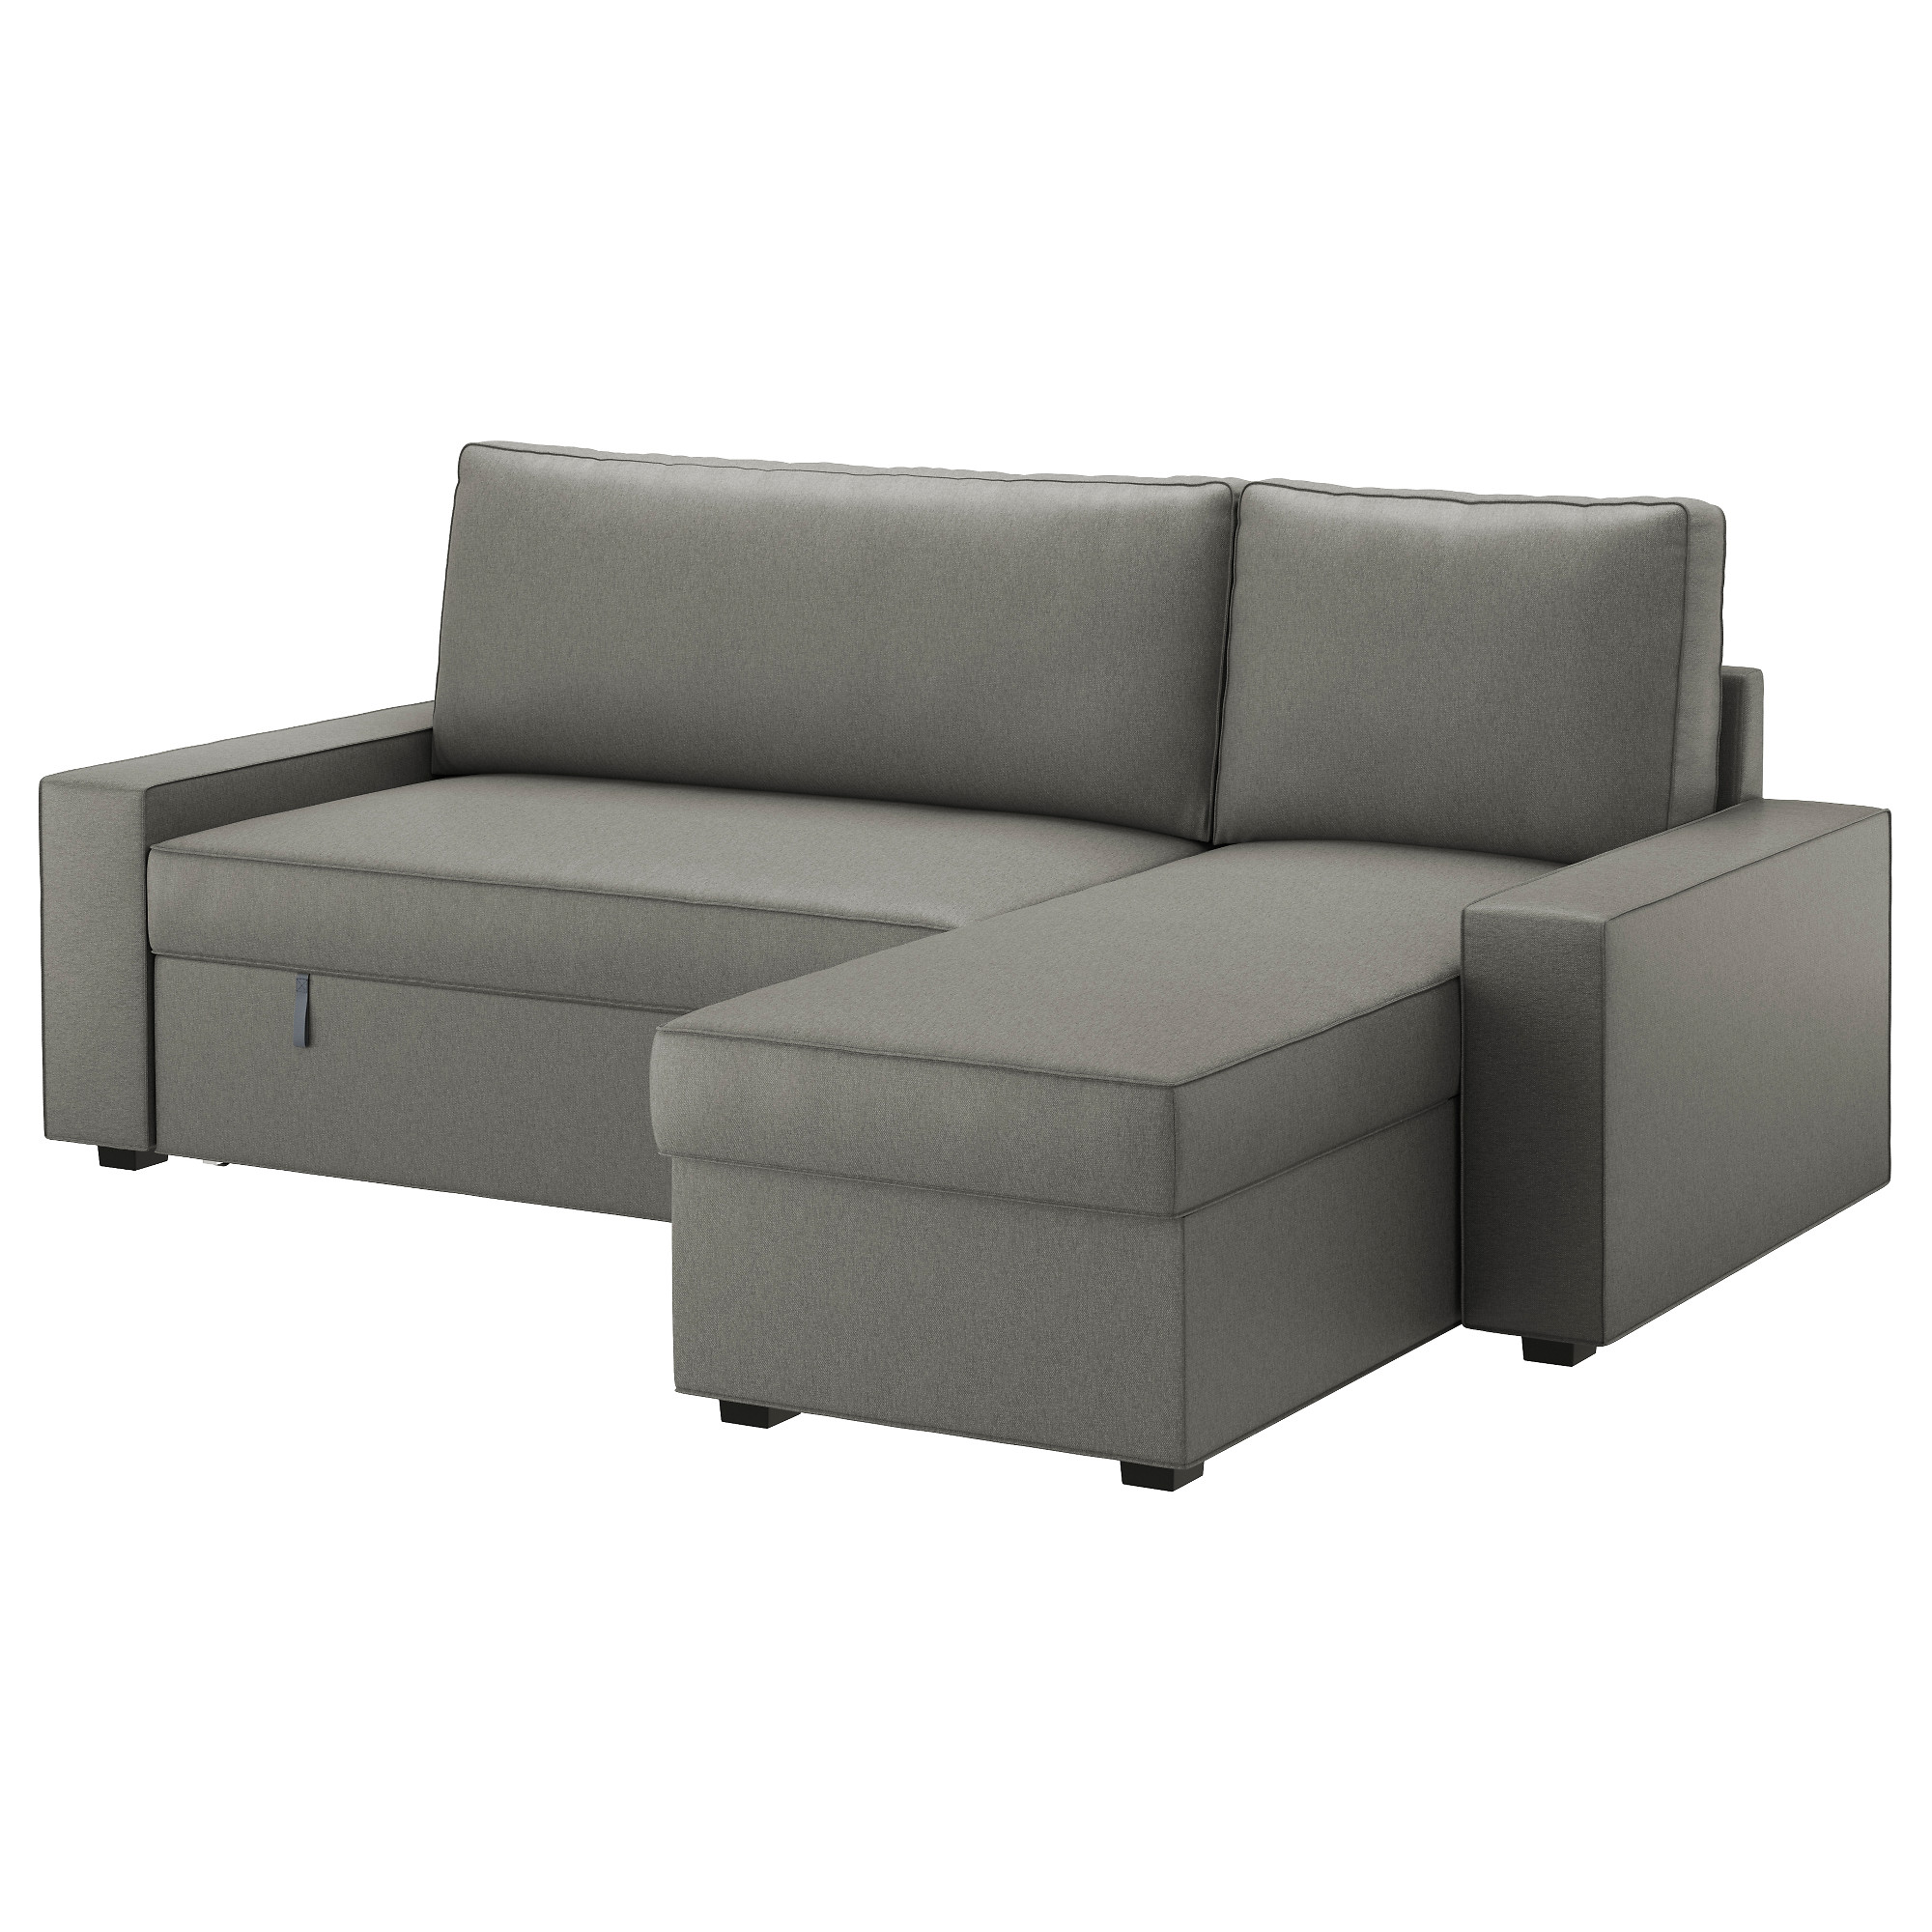 VILASUND Sofa bed with chaise longue - Borred grey-green - IKEA